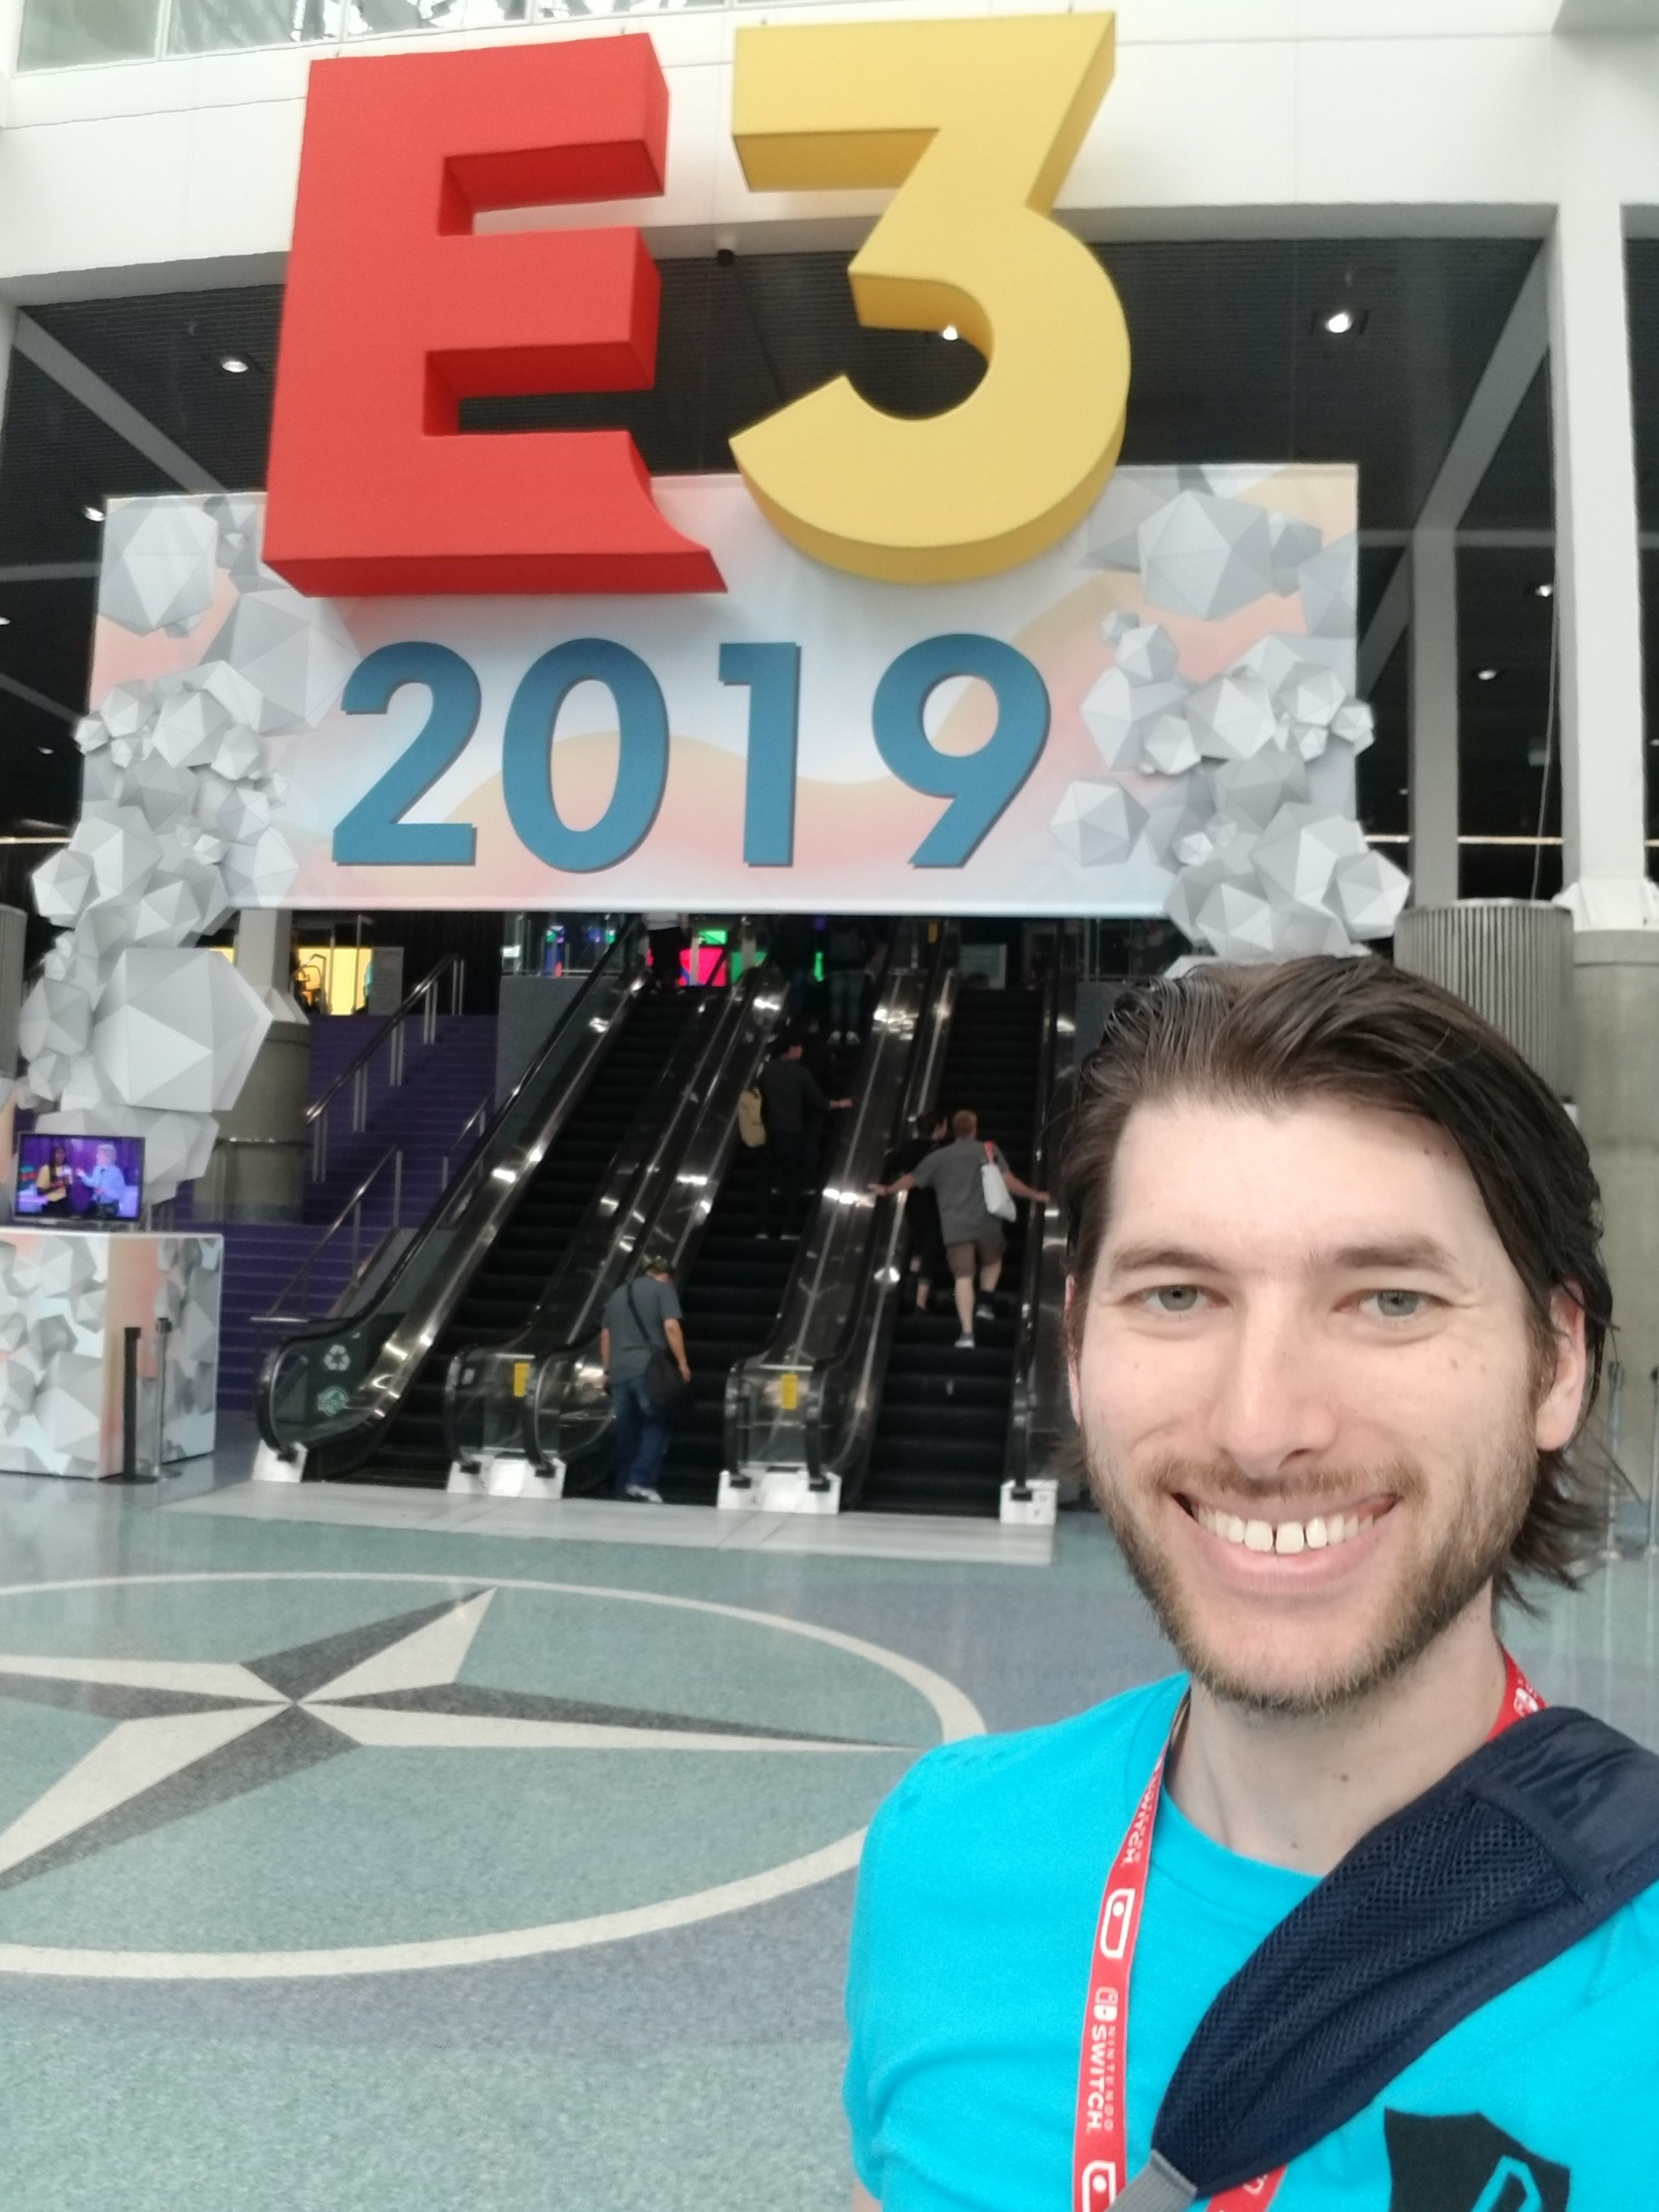 Alan at E3 2019 - I had the wonderful opportunity to work at E3 2019 in Los Angeles this past June in the AFK room operated by Take This.